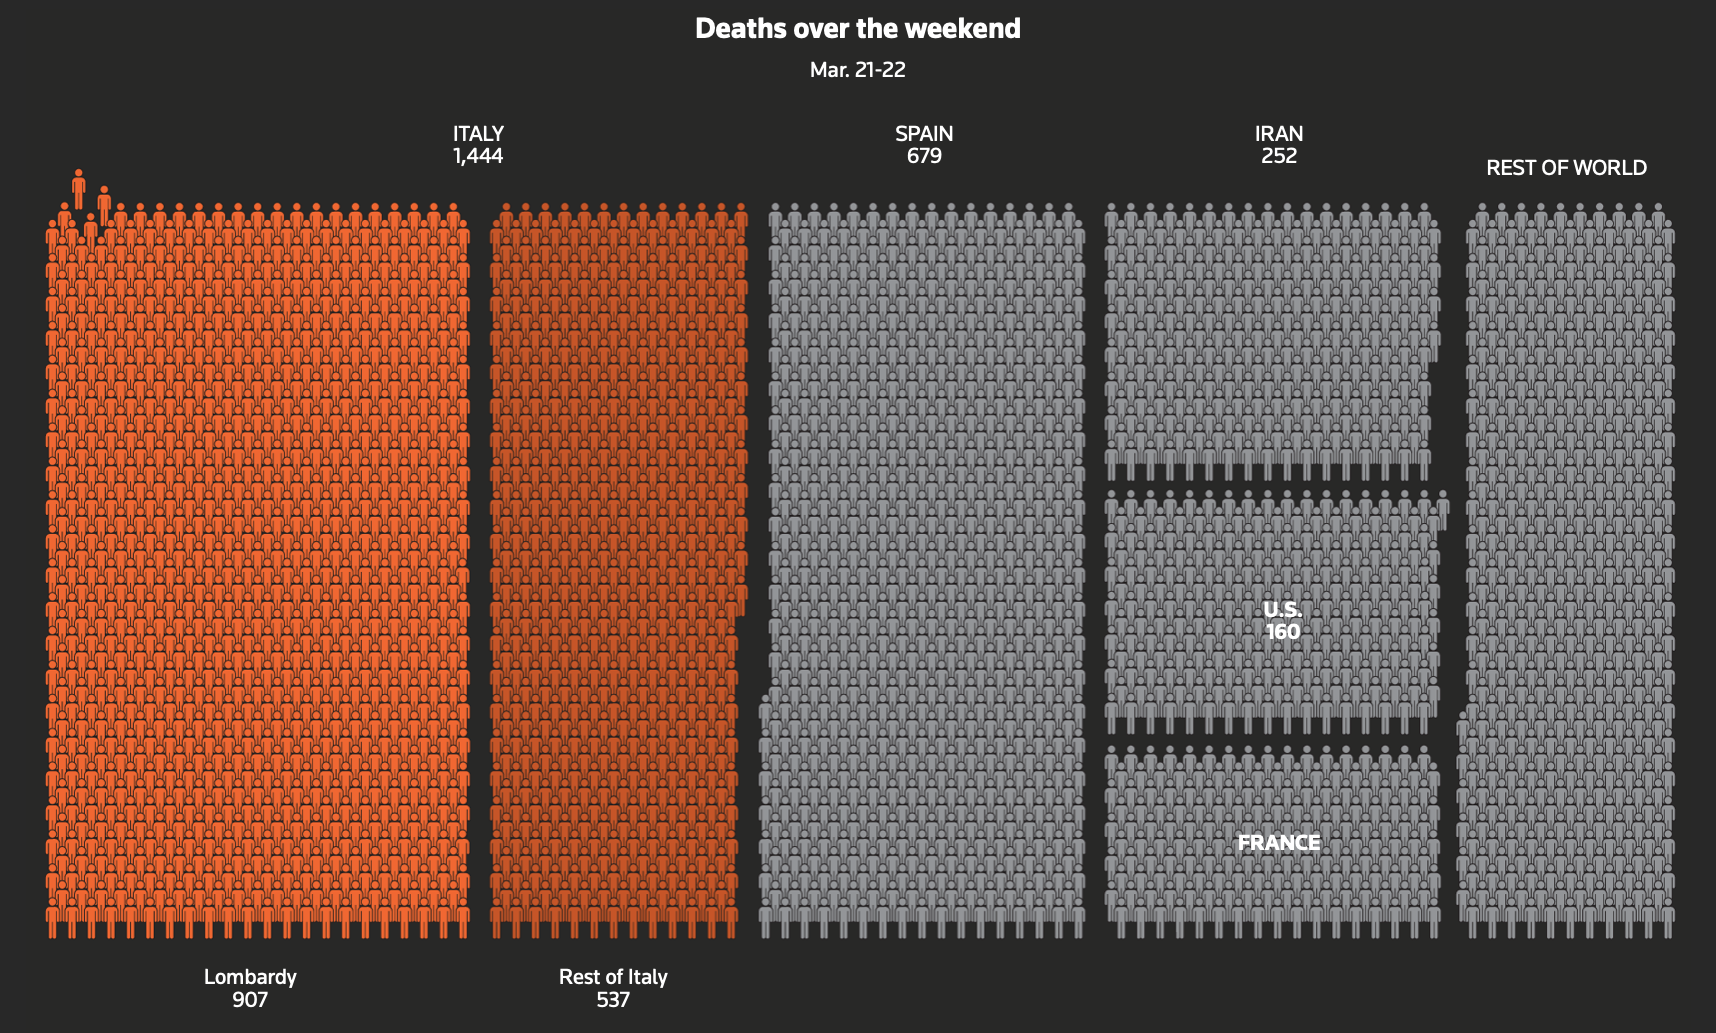 Visualizing Coronavirus Impact An Interview With Reuters Graphics By Tricia Aung Nightingale Medium